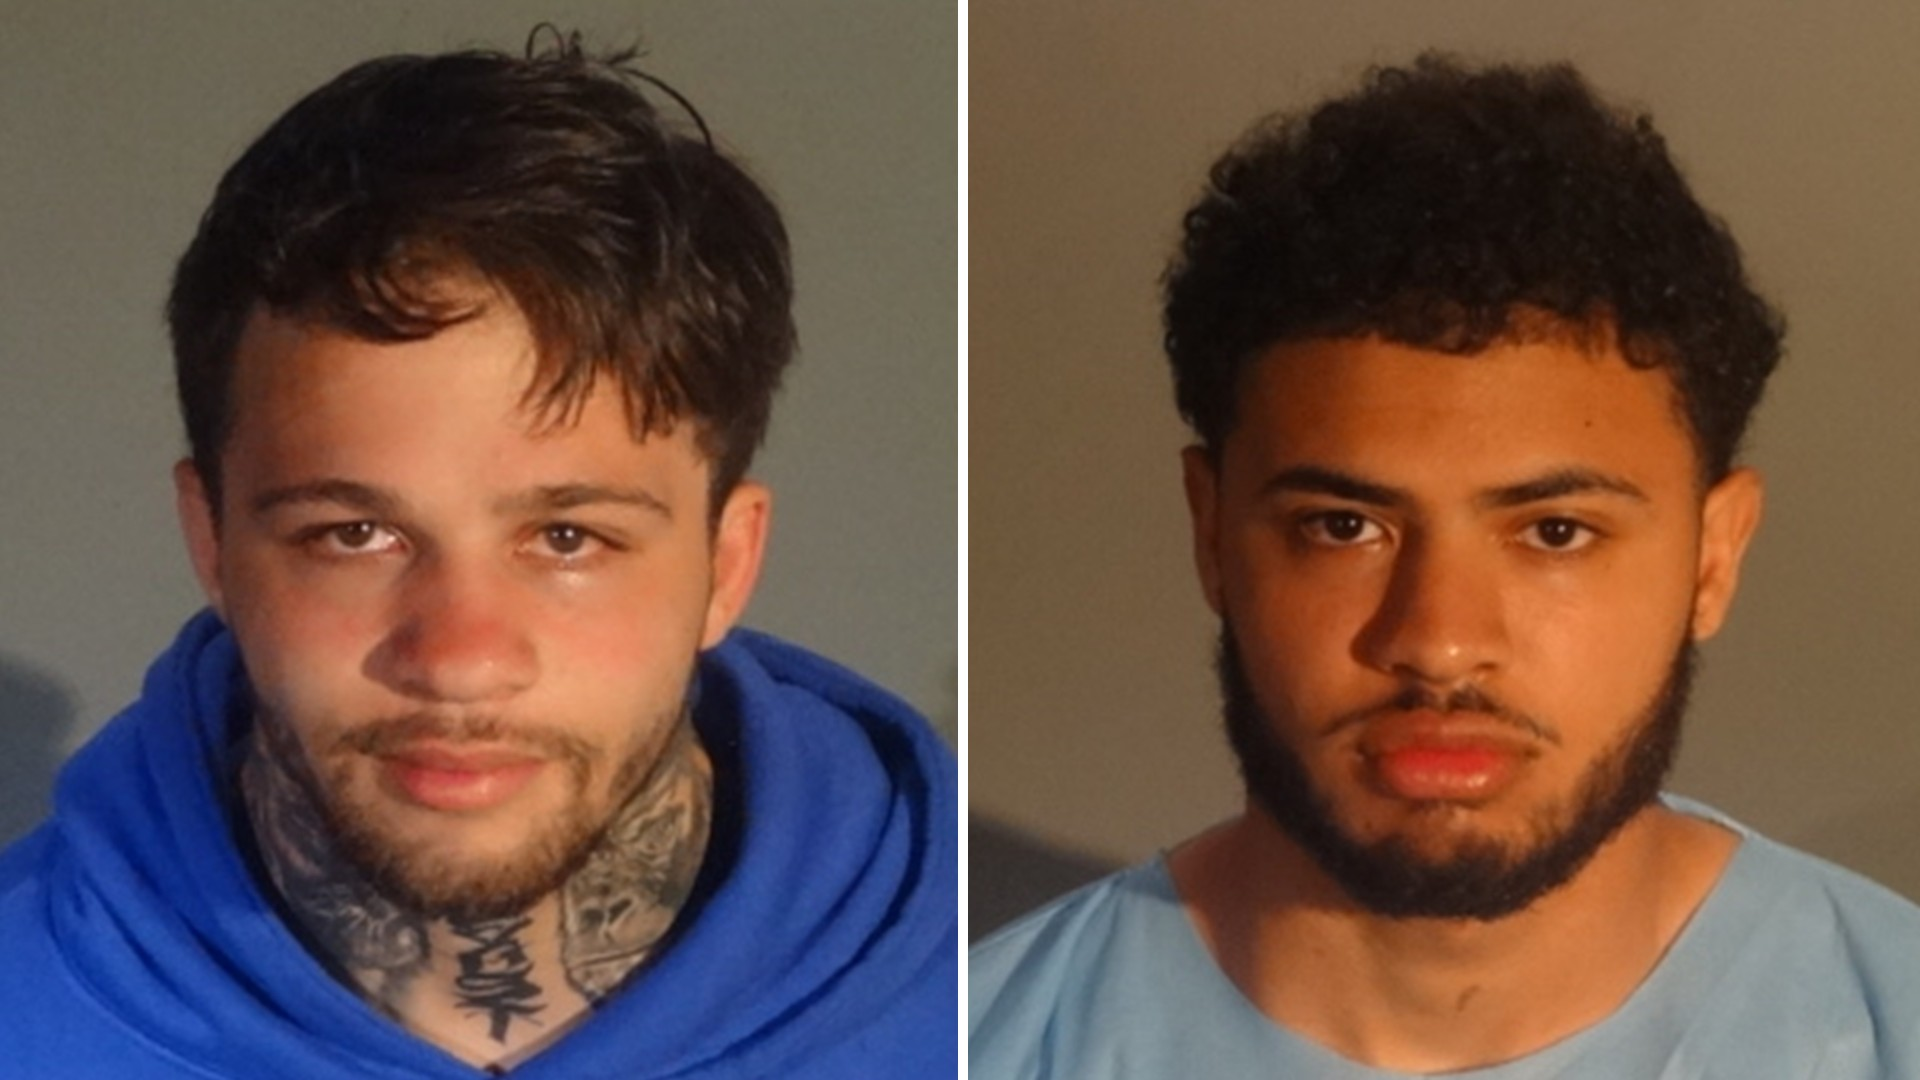 Lavonn Shawn Johnson and Treyton Thomas Halfman, both 21-year-olds from Wisconsin, are seen in booking photos released by Santa Monica police on April 1, 2021.